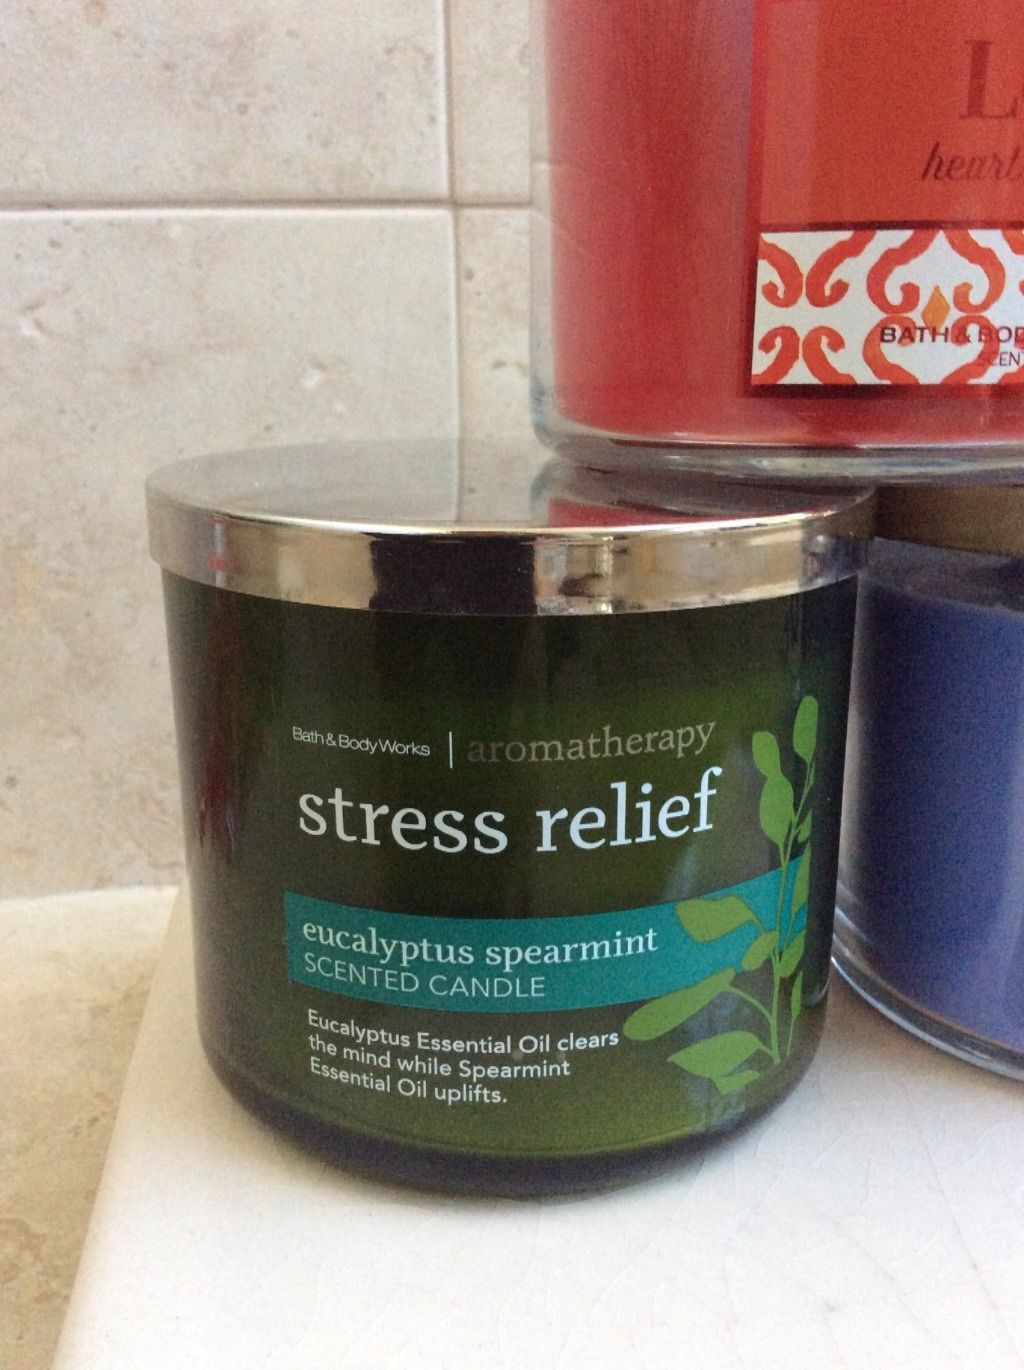 Bath Body Works 3 Wick Candle, Select One Scent:  Love, Relax, Stress Relief image 4